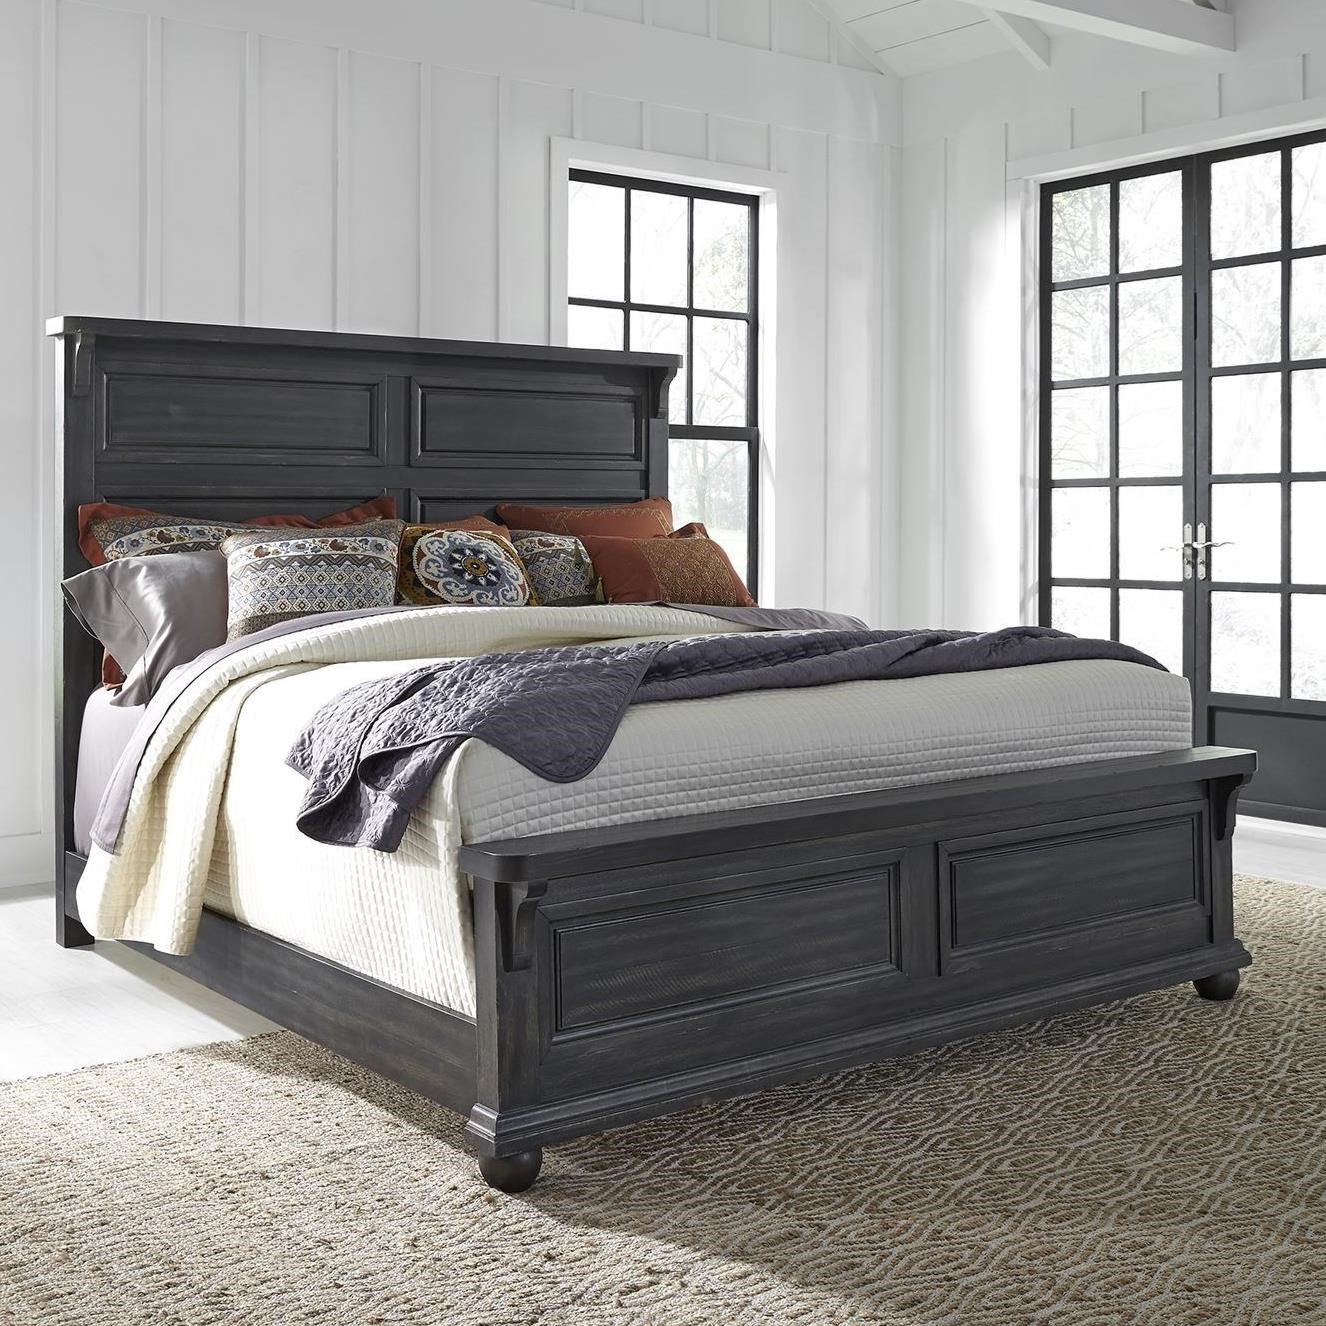 Harvest Home King Panel Bed by Libby at Walker's Furniture